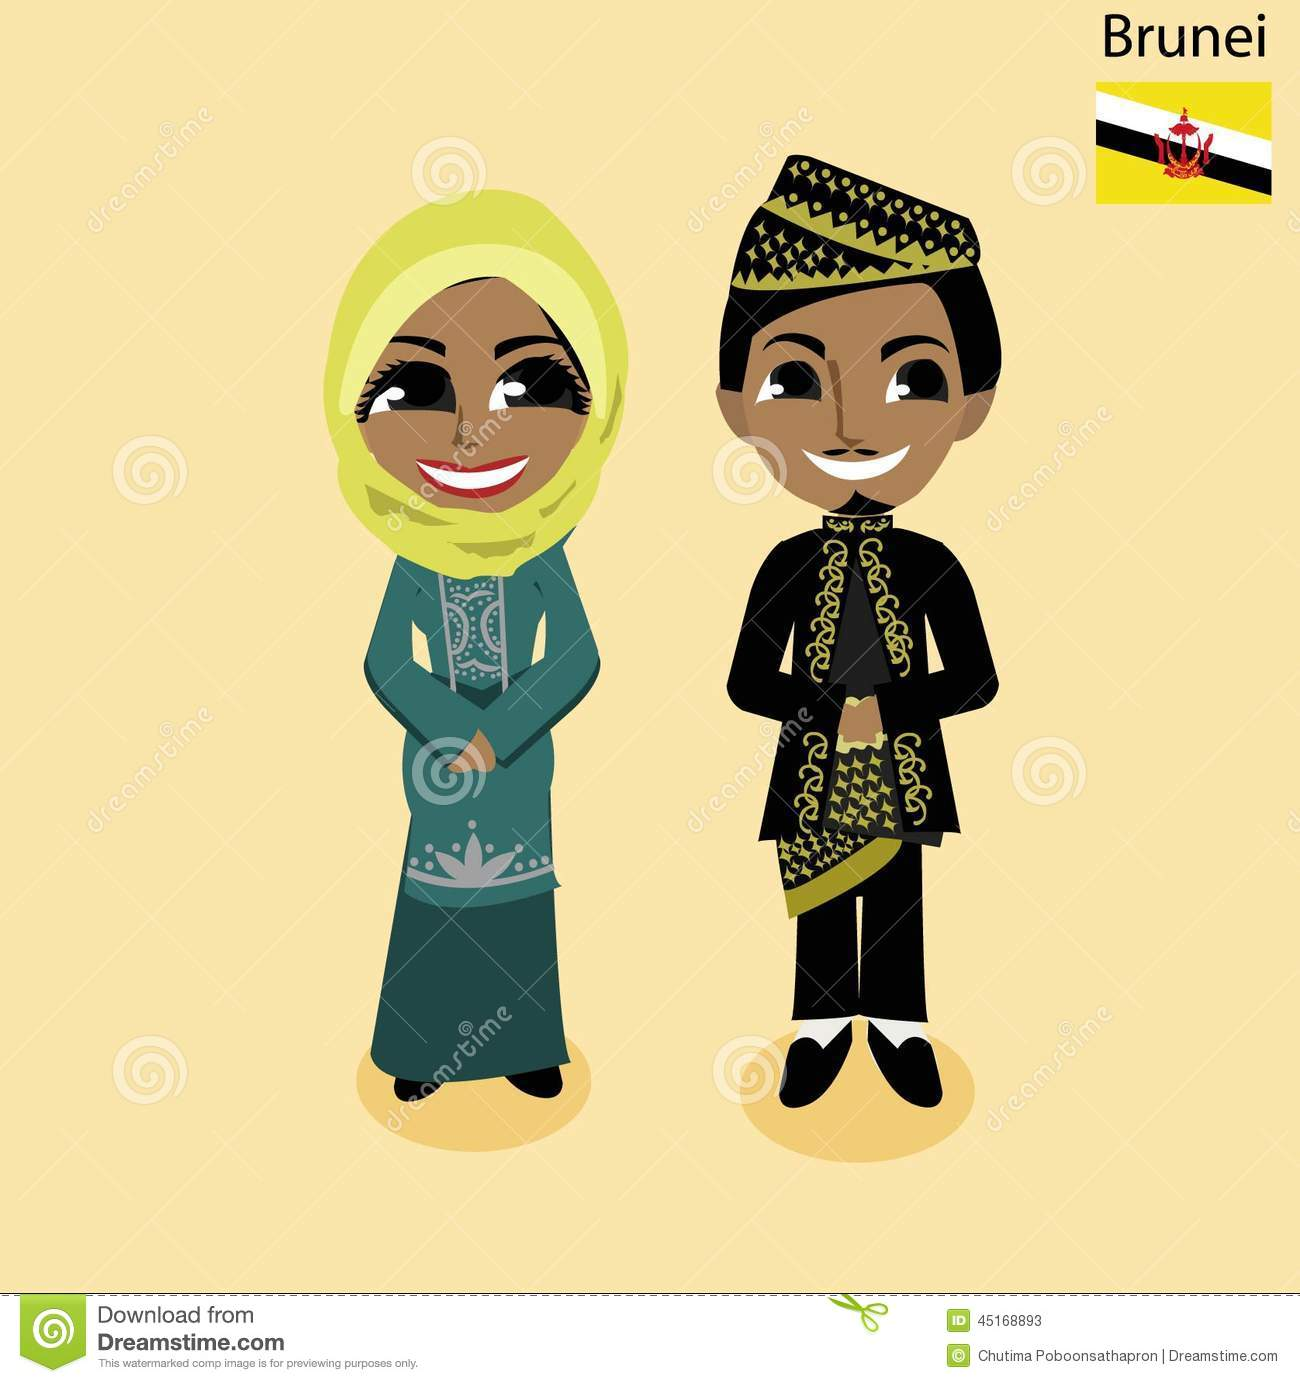 Brunei Stock Illustrations.